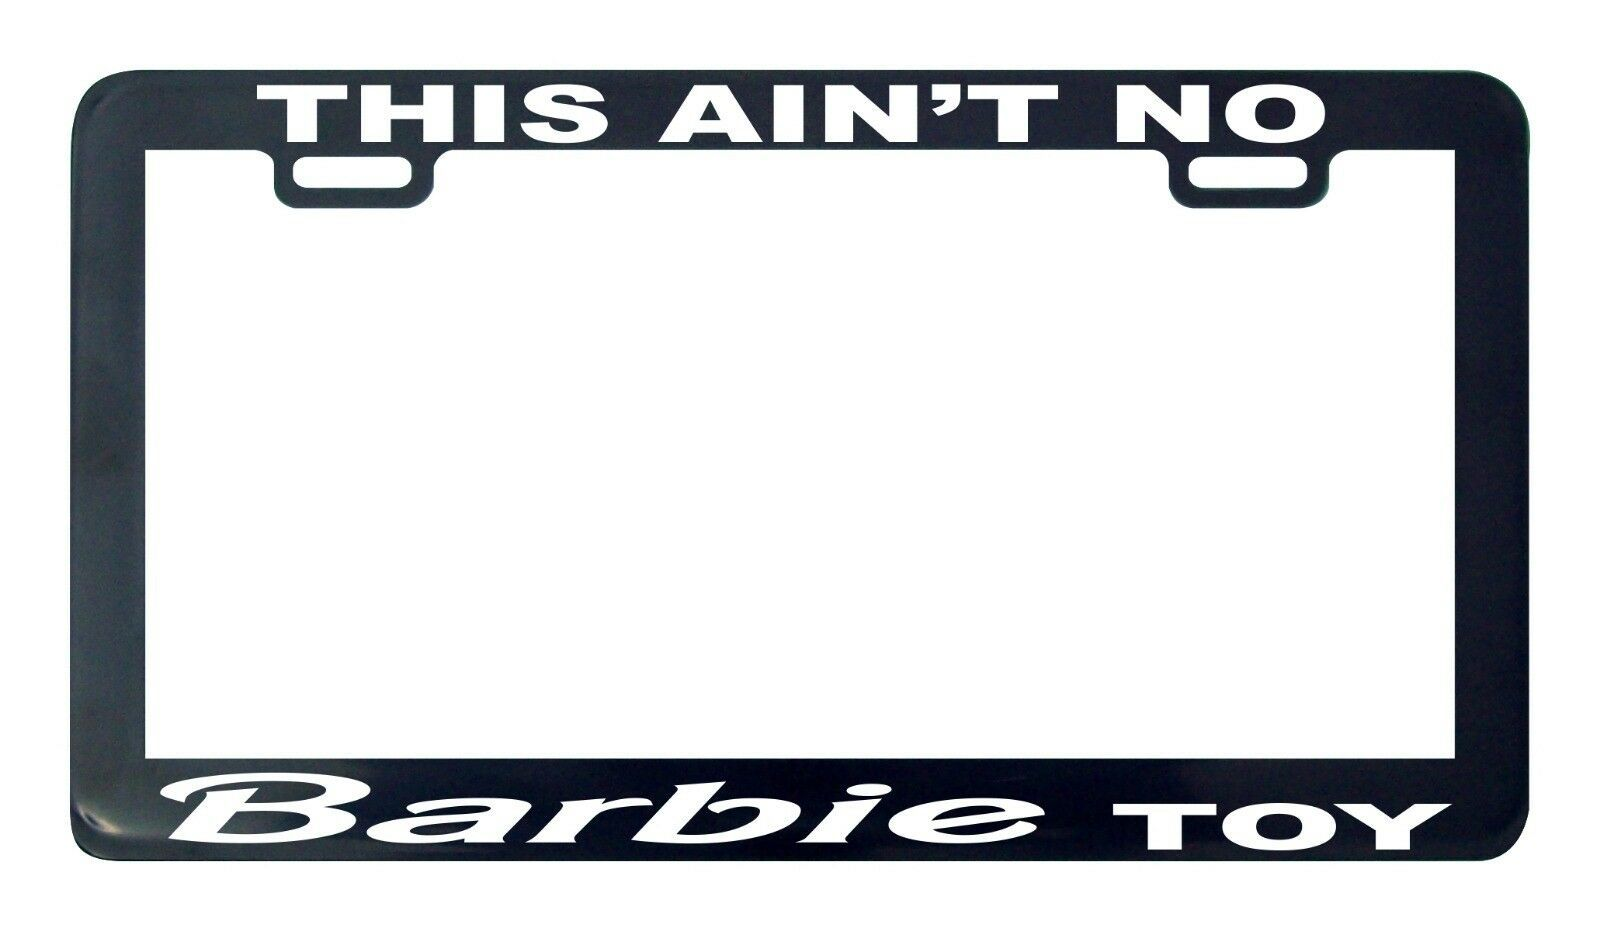 Primary image for This ain't no barbie toy funny license plate frame tag holder